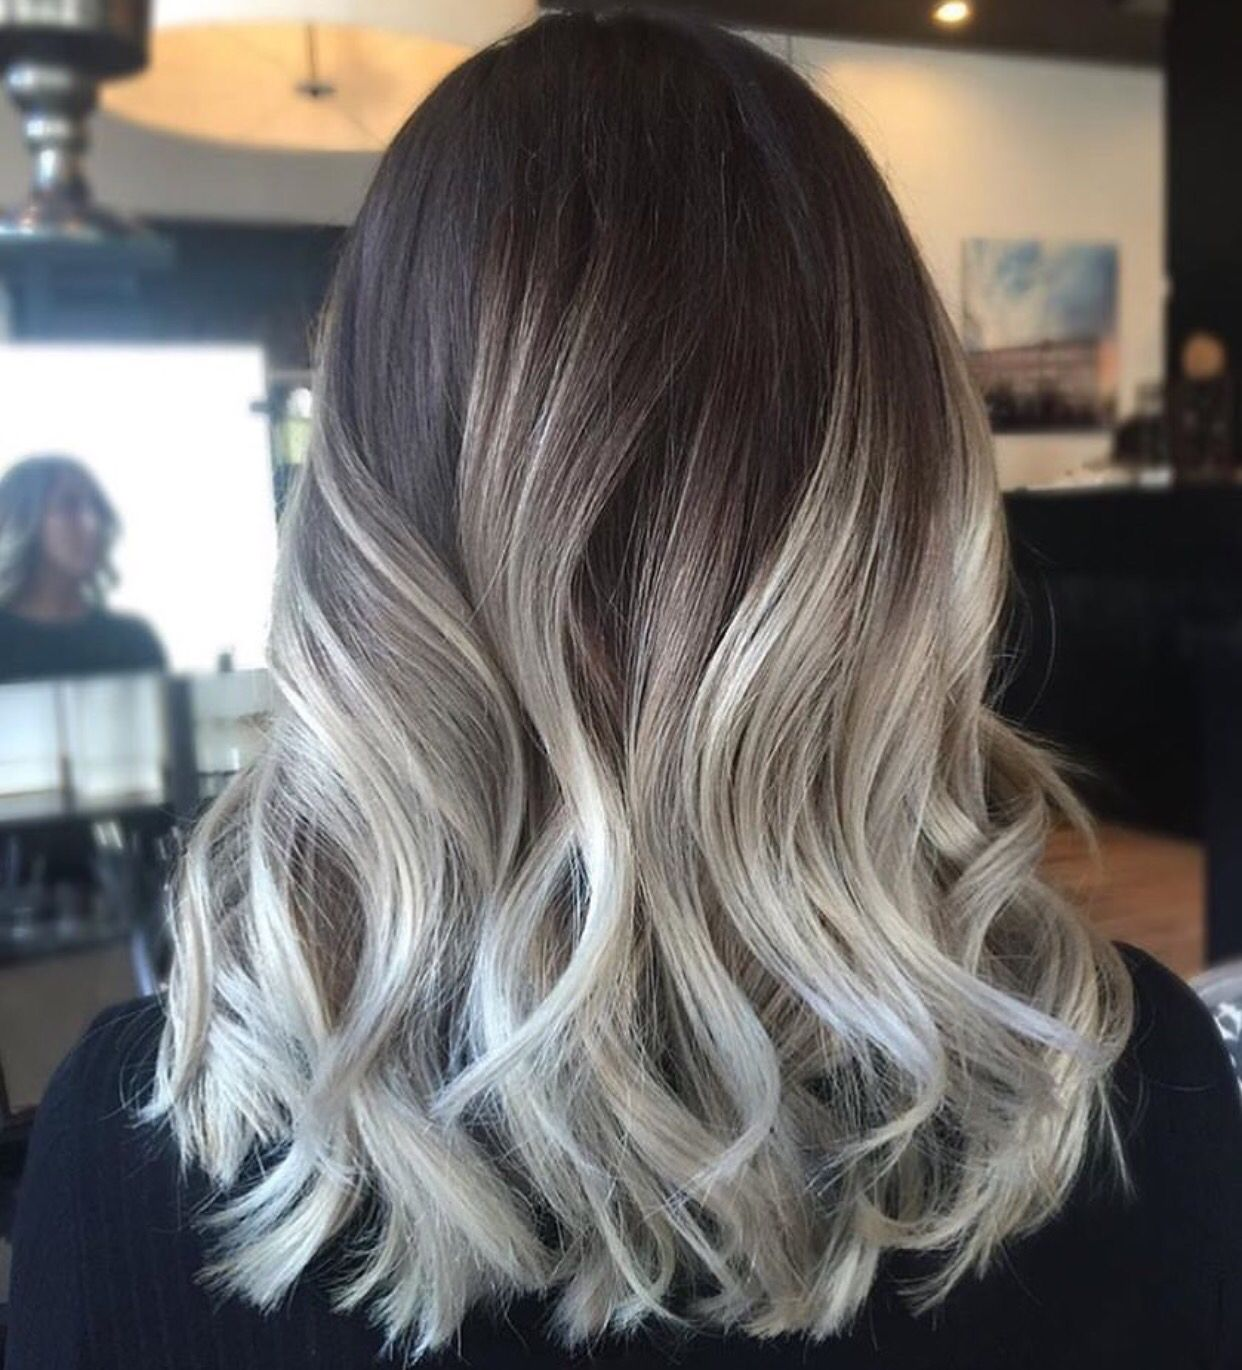 A strong fashion ombre